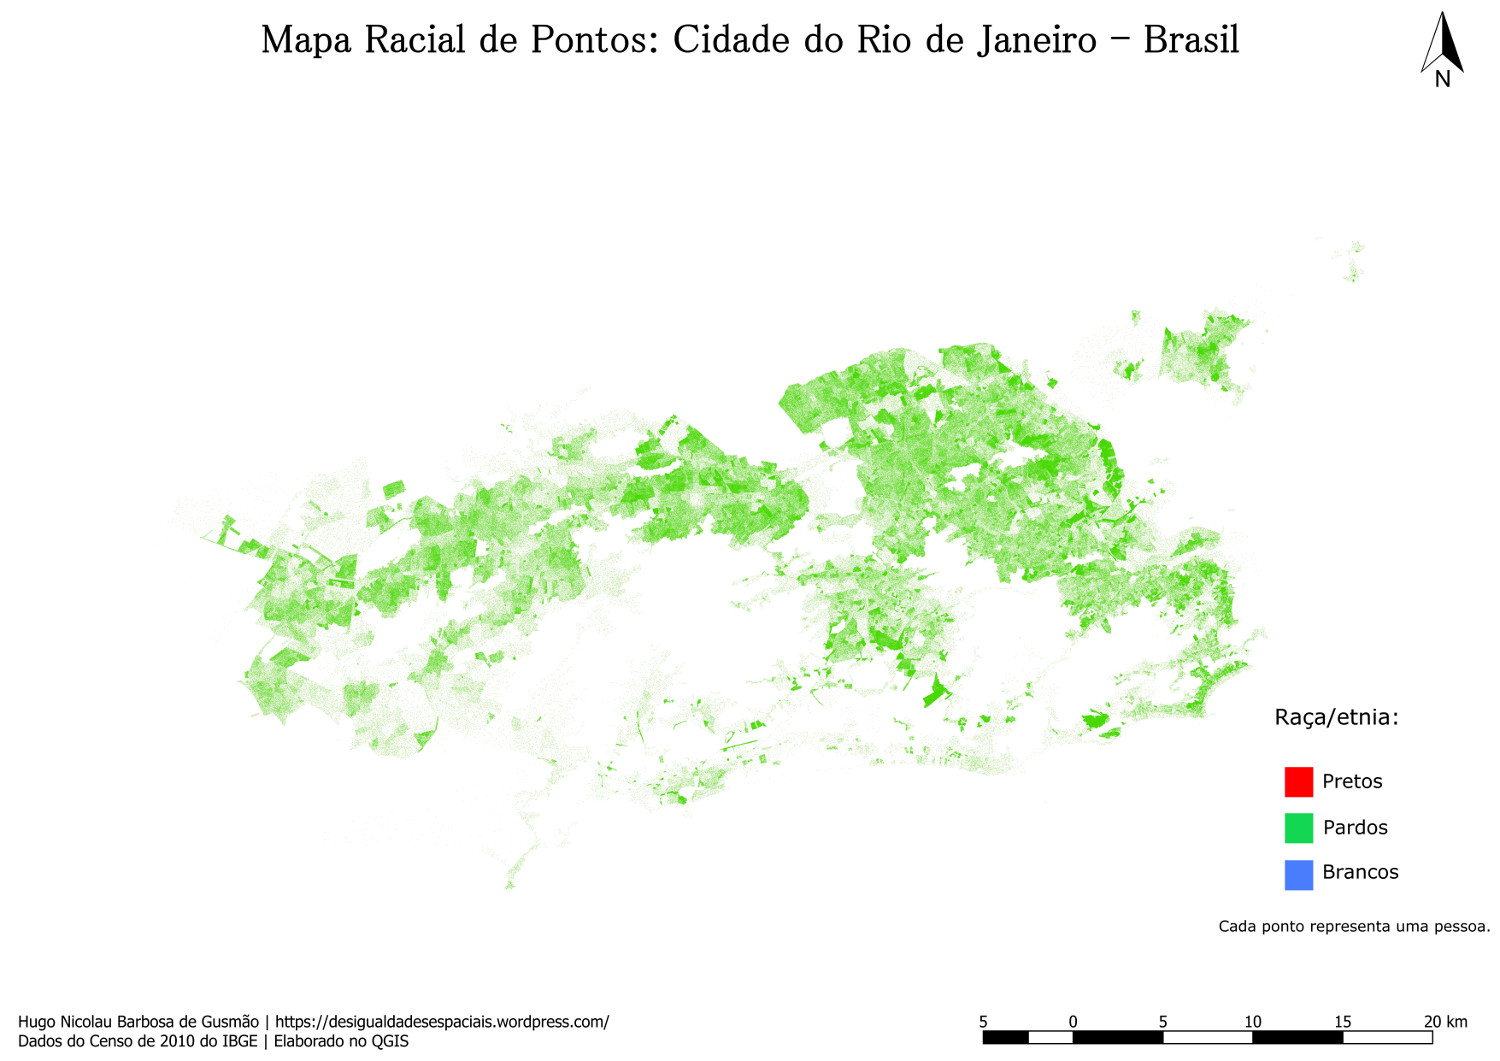 Map showing distribution of brown or mixed race people in the city of Rio de Janeiro